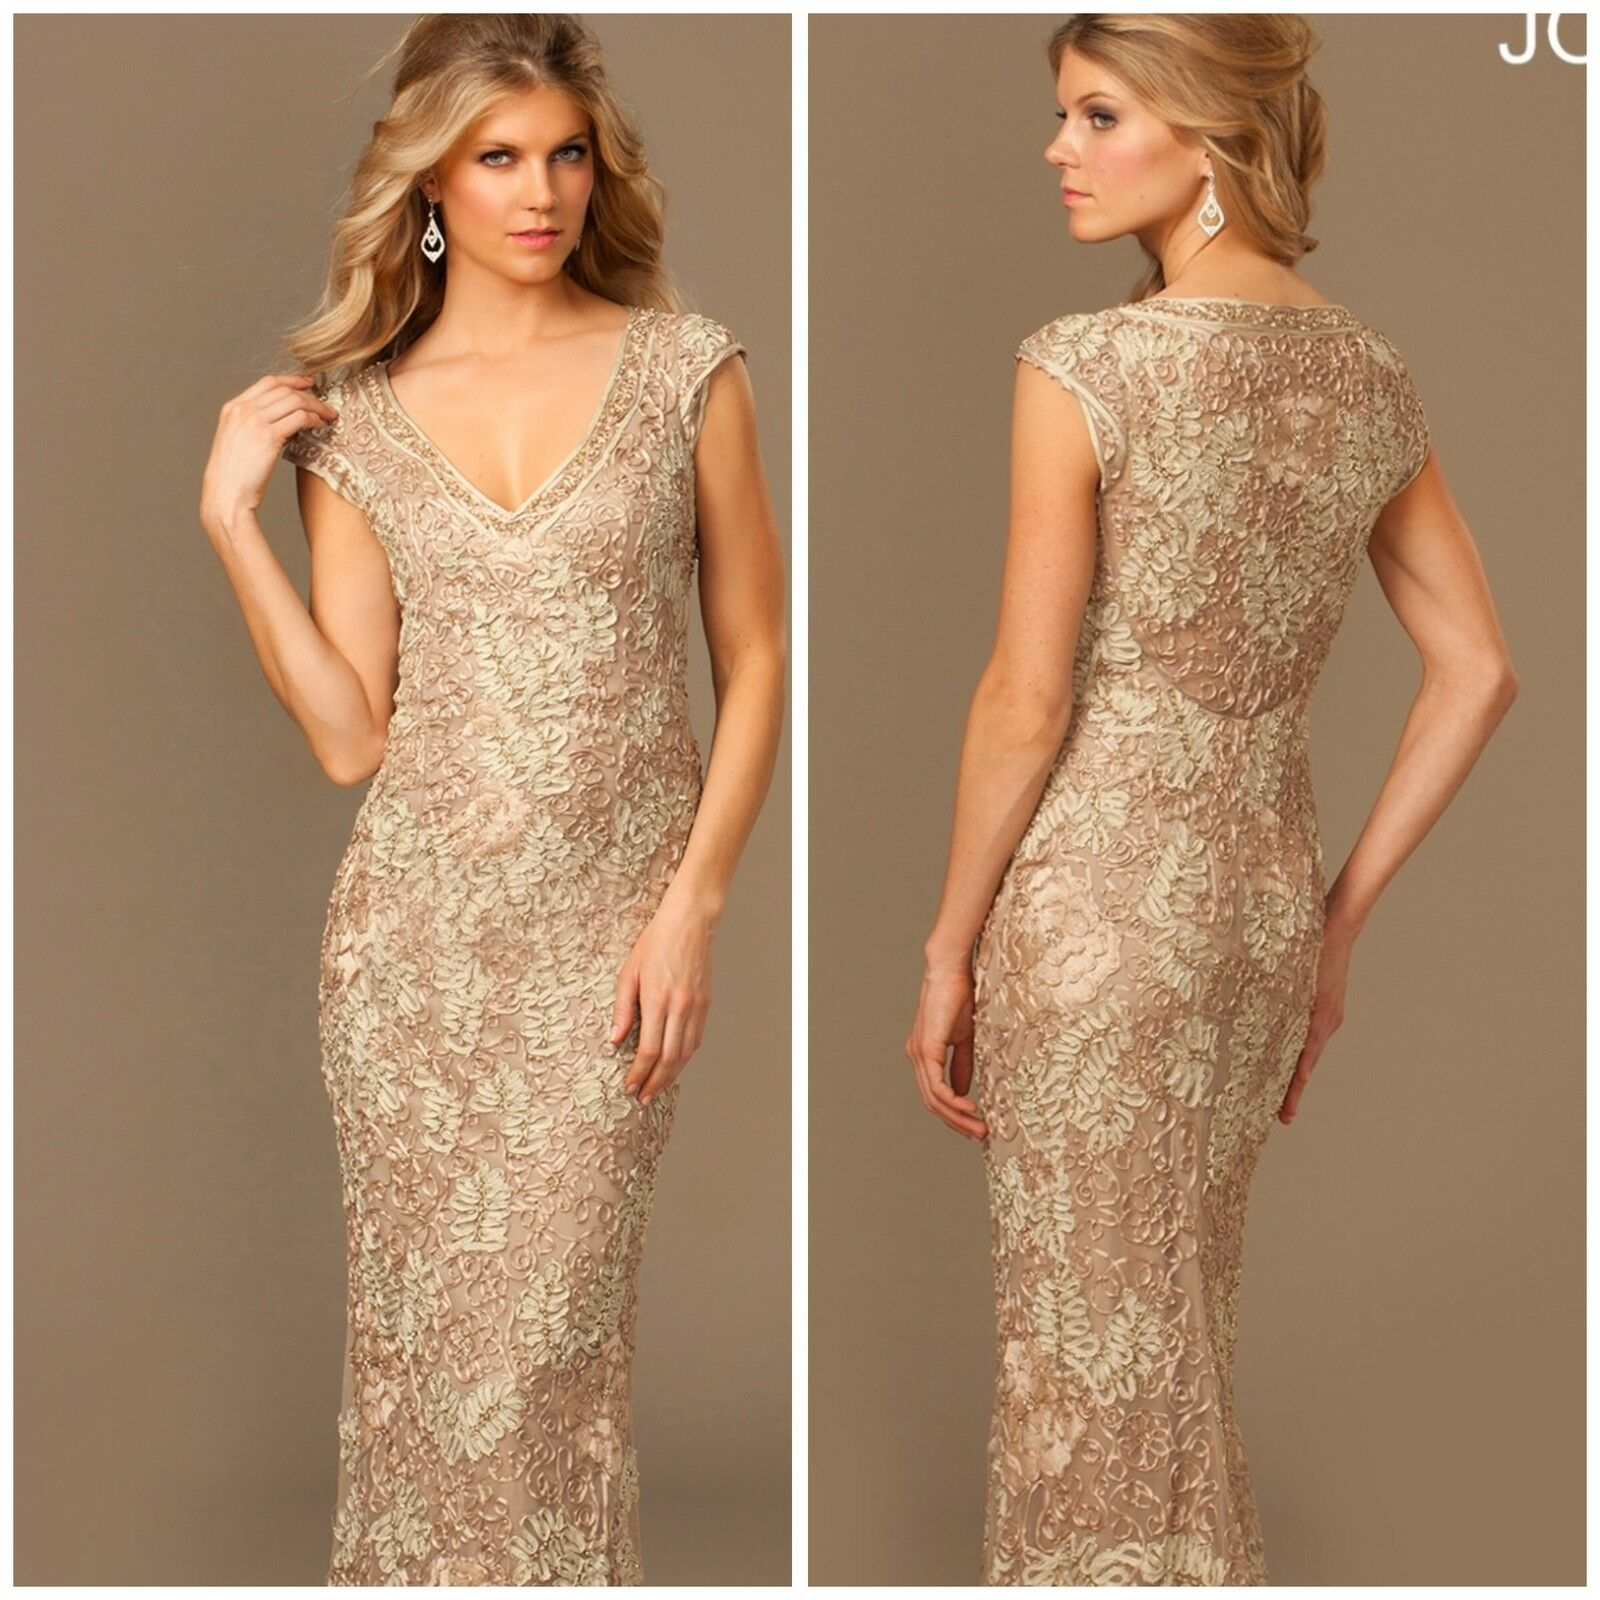 NWT JOVANI CAP SLEEVE LACE  GOWN IN LIGHT  CAFE   AUTENTIC LOW PRICE